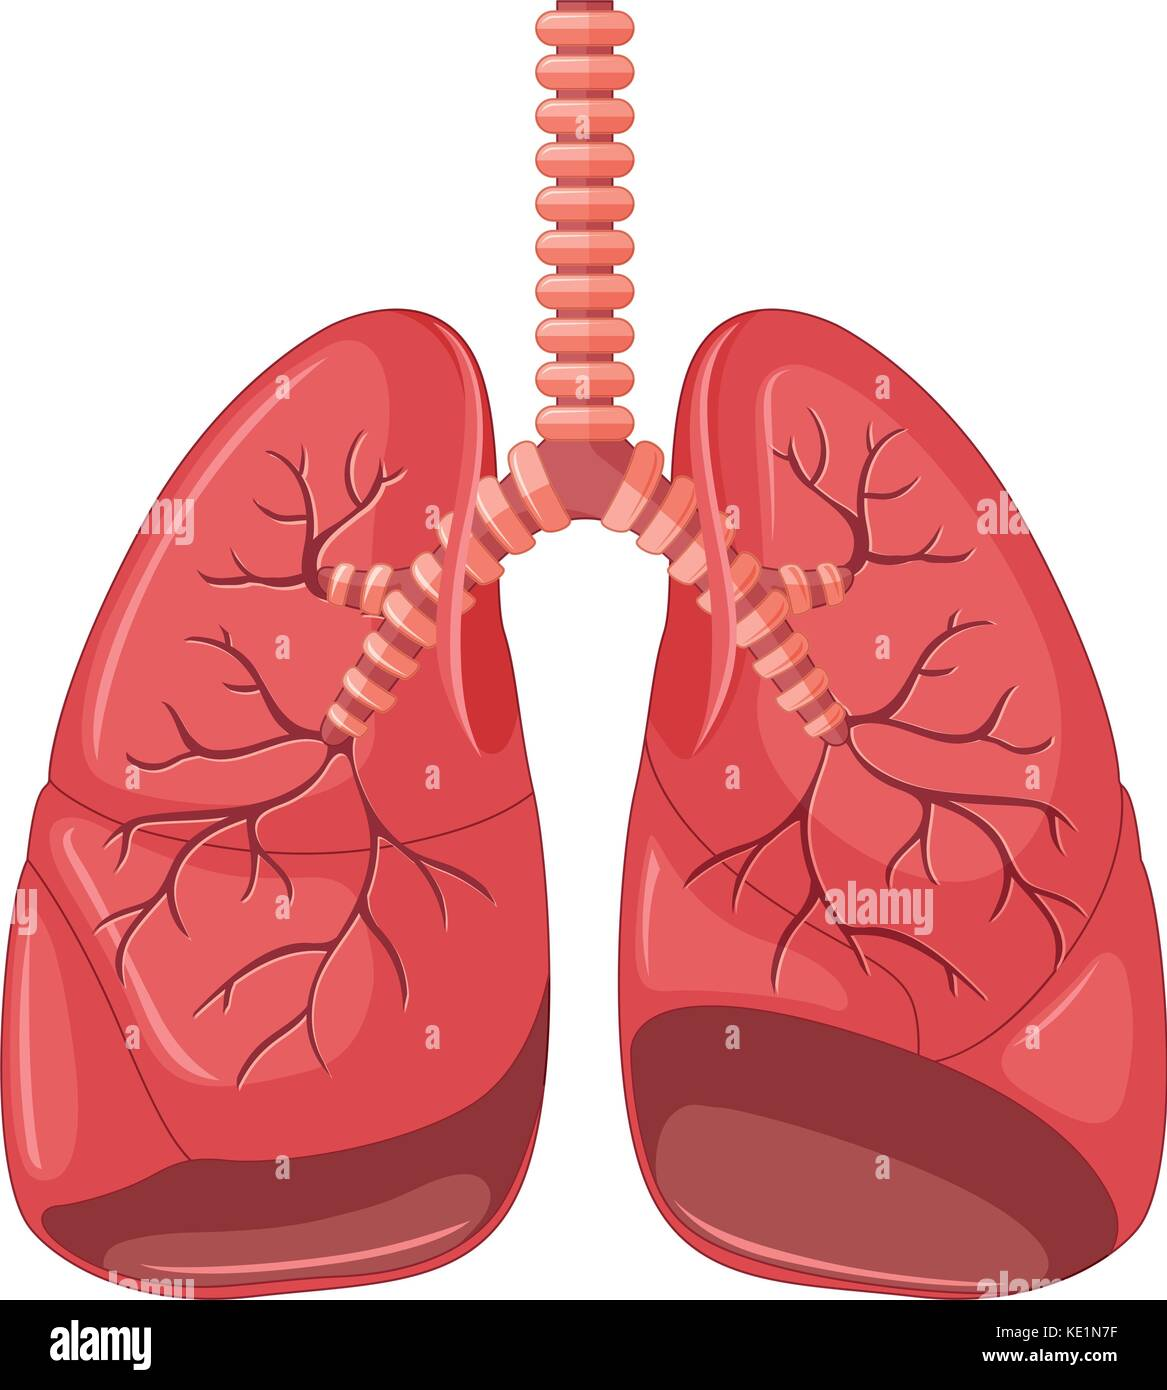 Lung diagram of pneumonia illustration - Stock Image